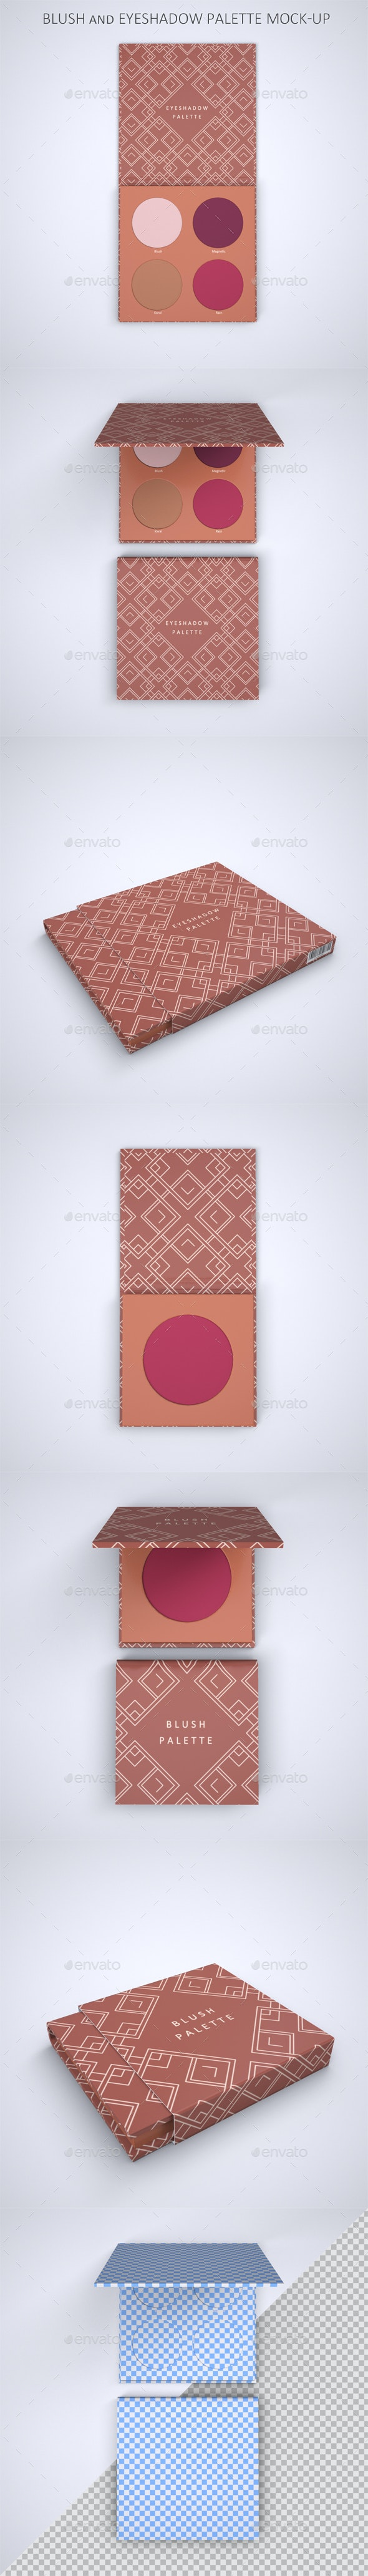 Blush and Eyeshadow Palette Mock-up - Packaging Product Mock-Ups